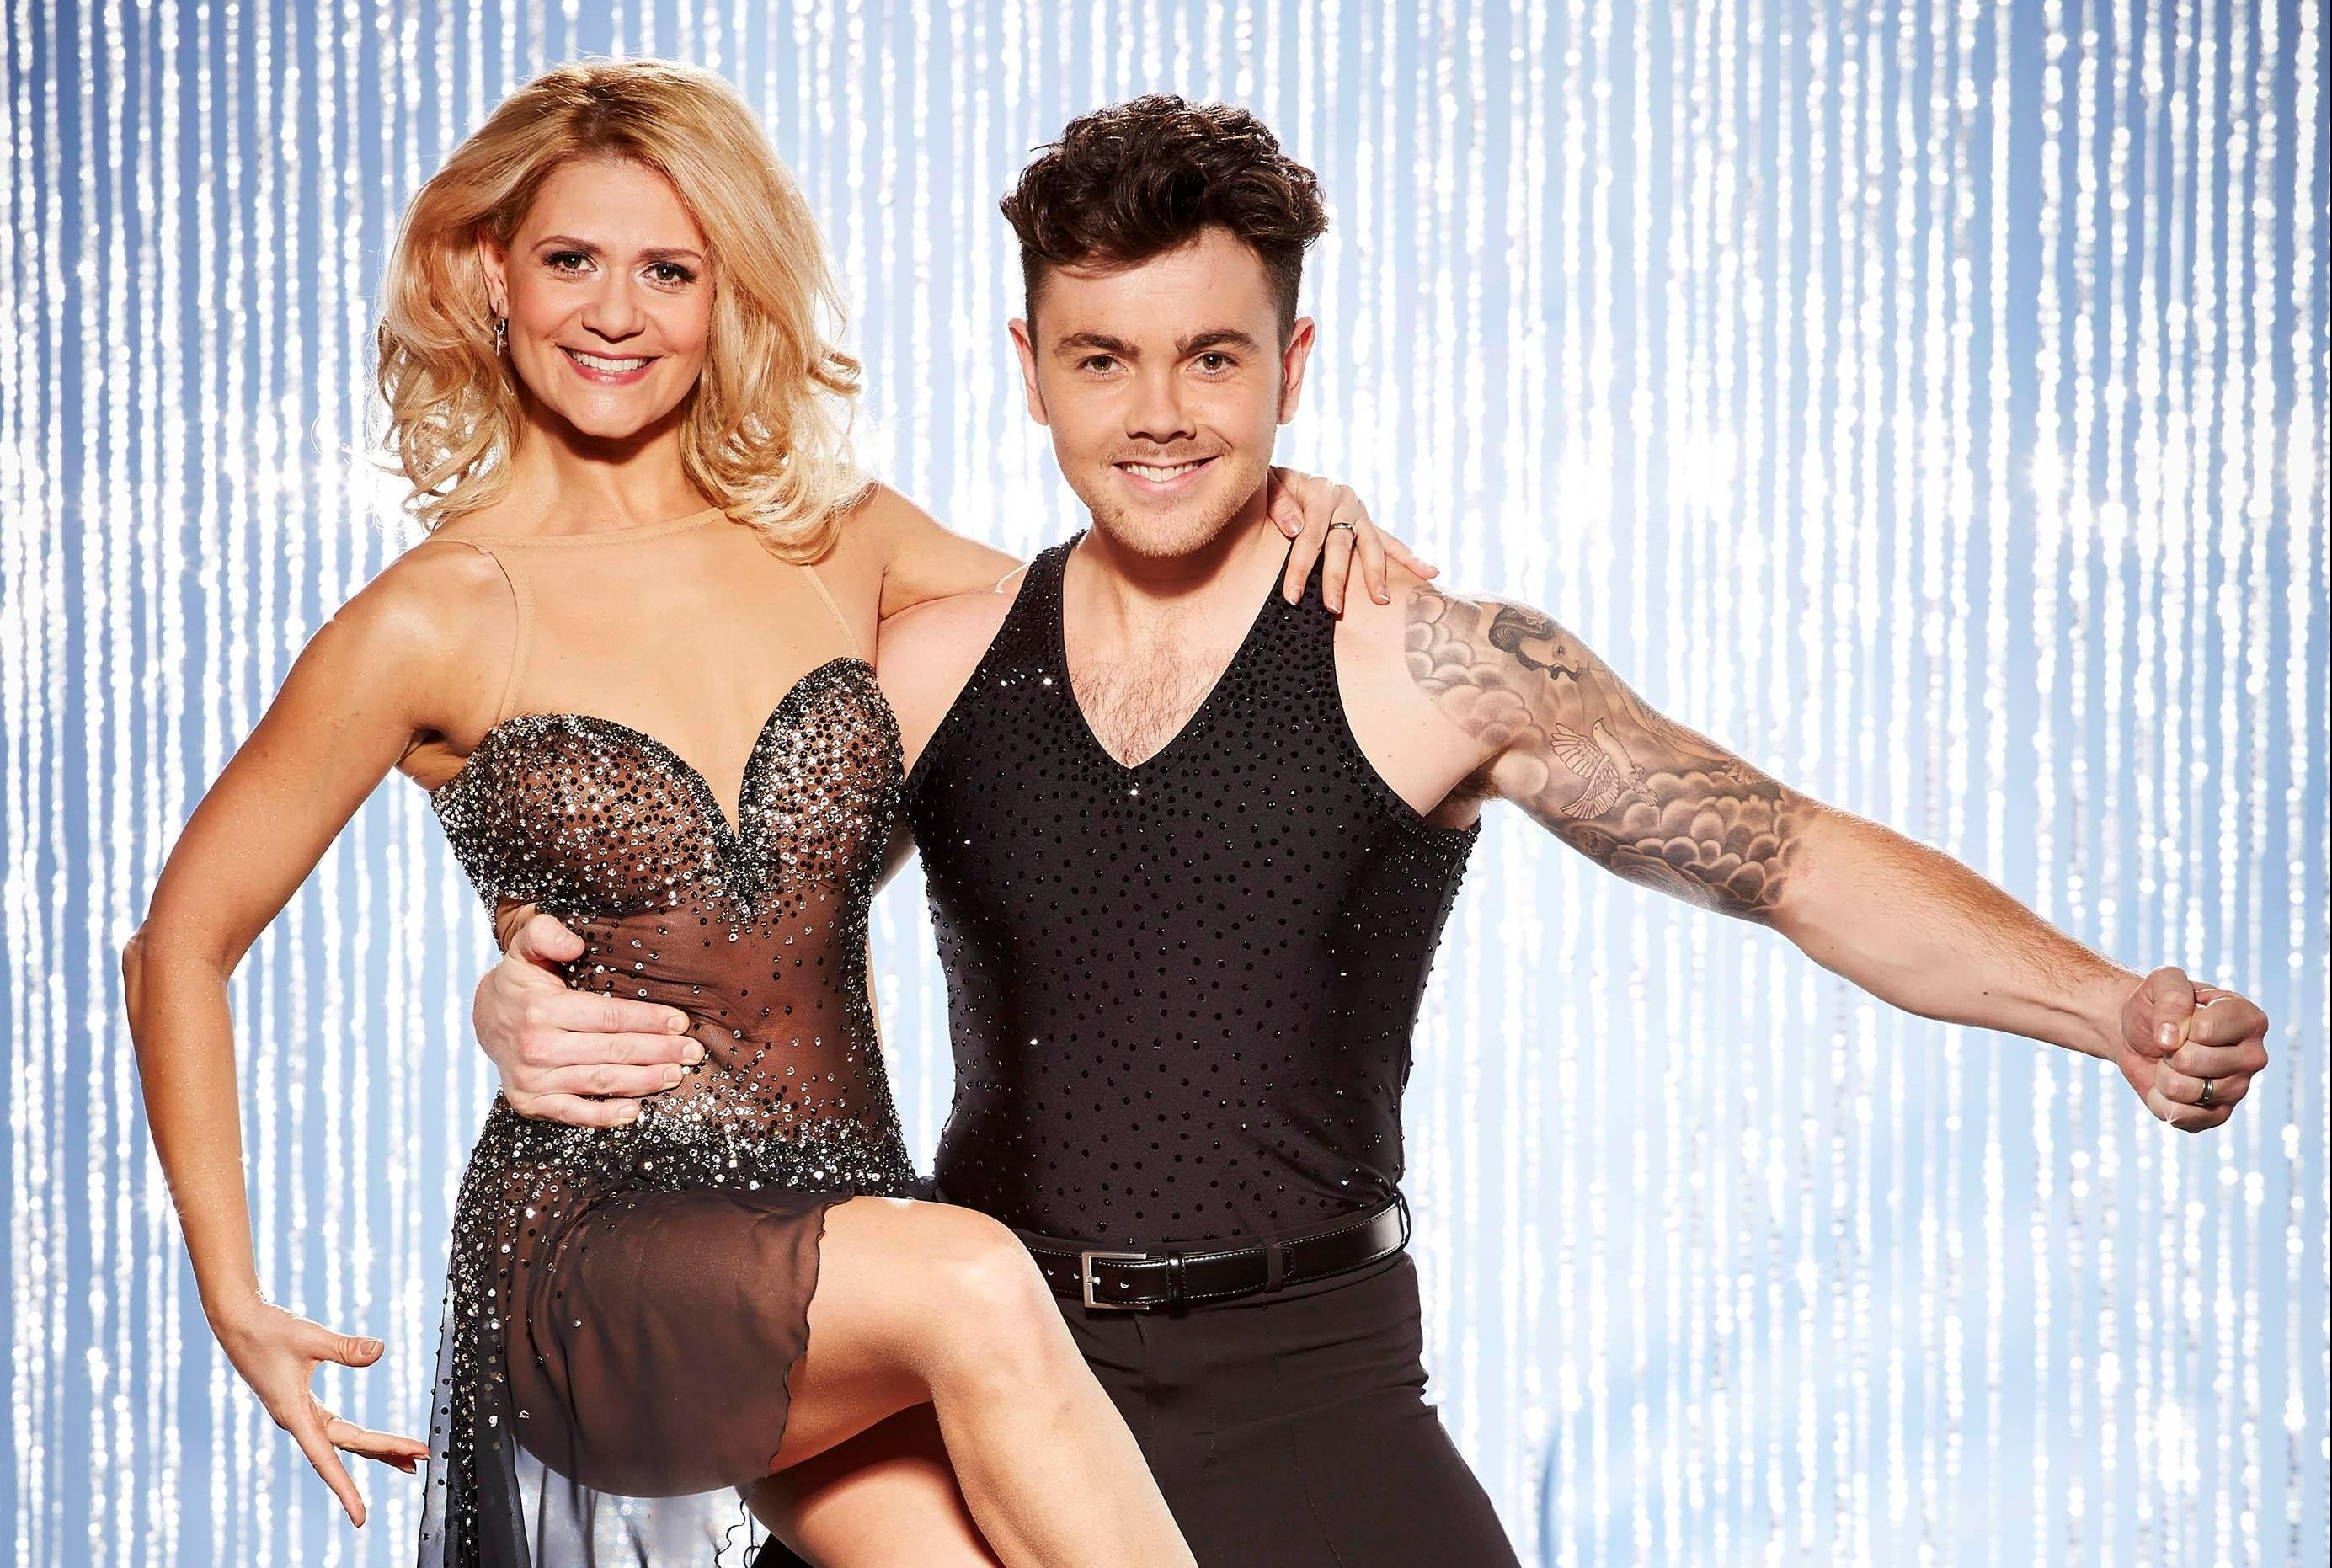 Here's every Dancing On Ice winner and who they beat in the final